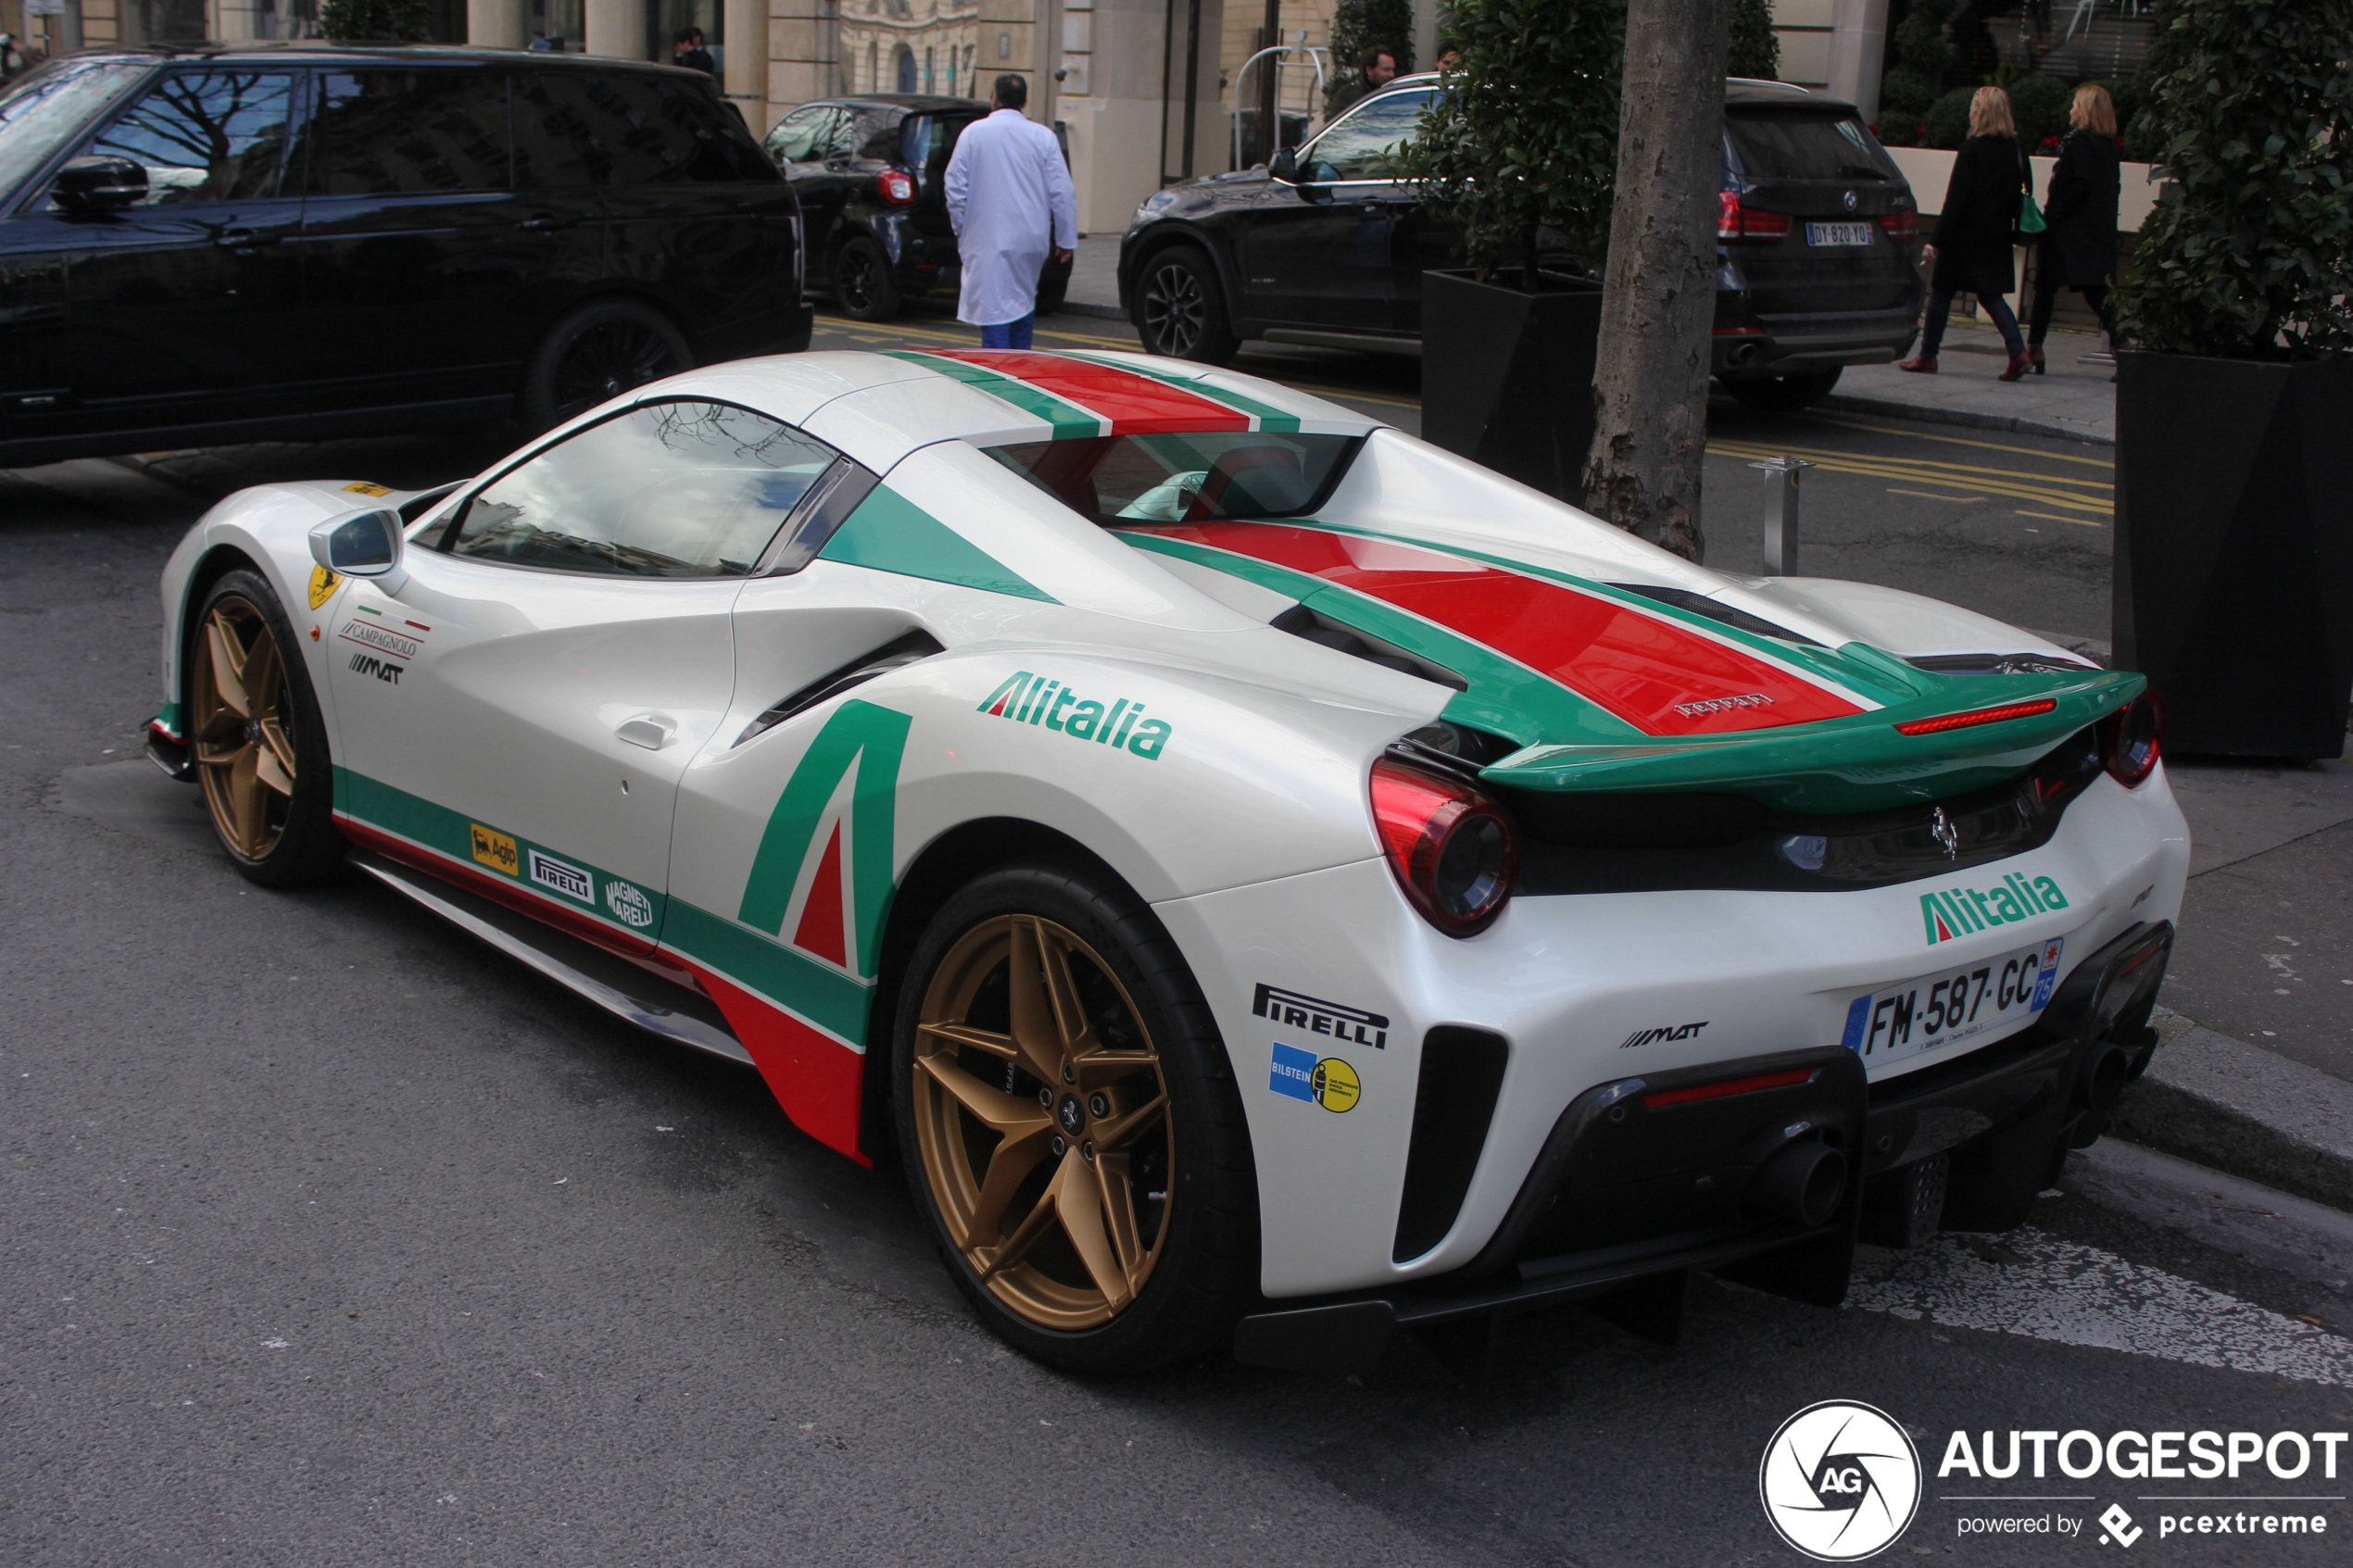 Ferrari 488 Pista Spider sports the Alitalia look